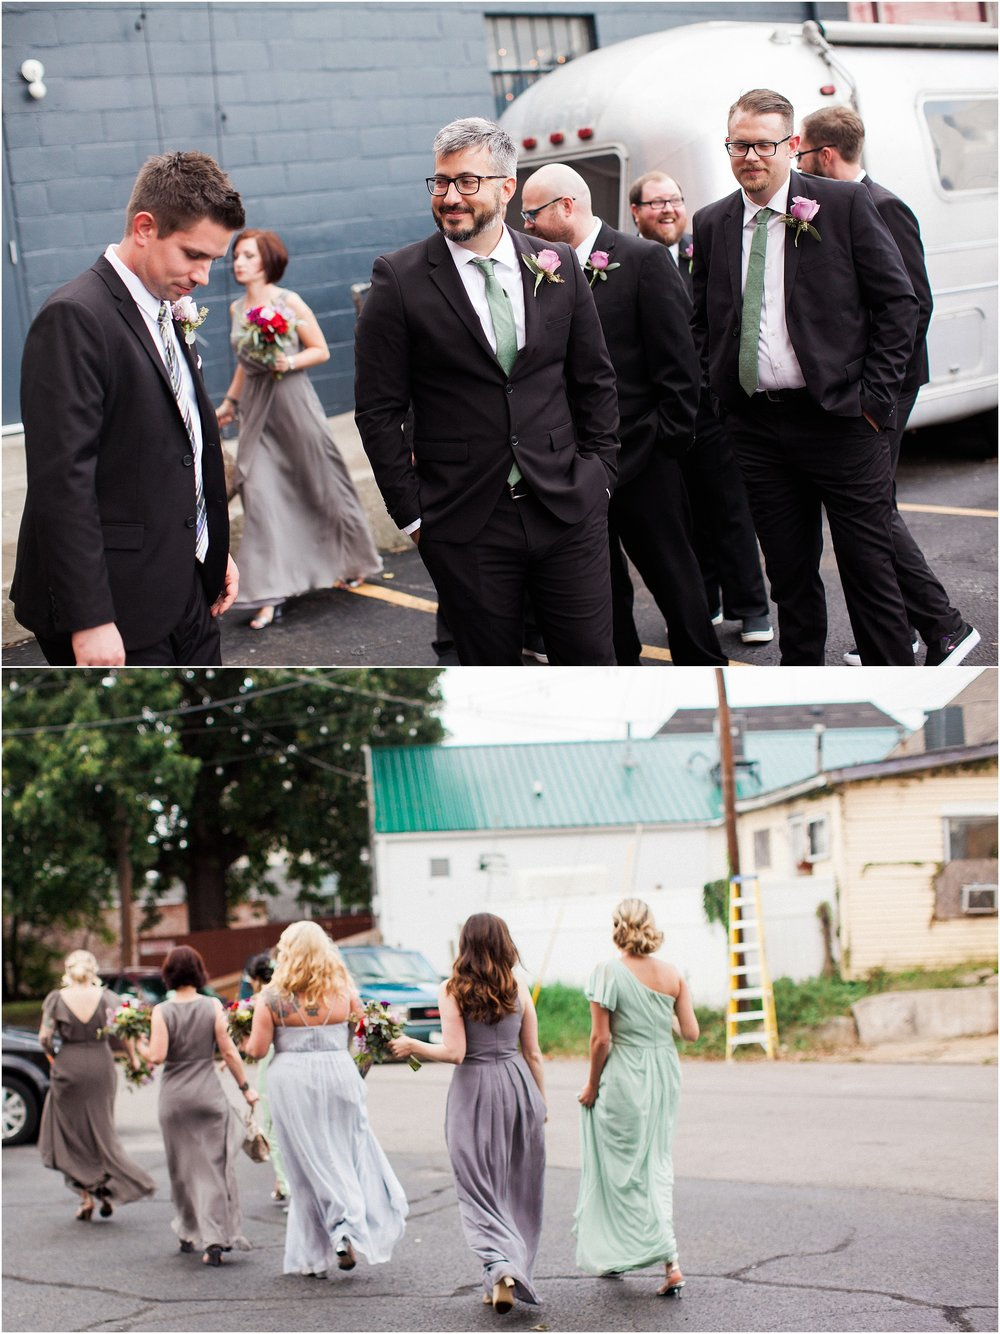 www.emilymoseley.com | Lexington KY wedding and portrait photographer_0020.jpg